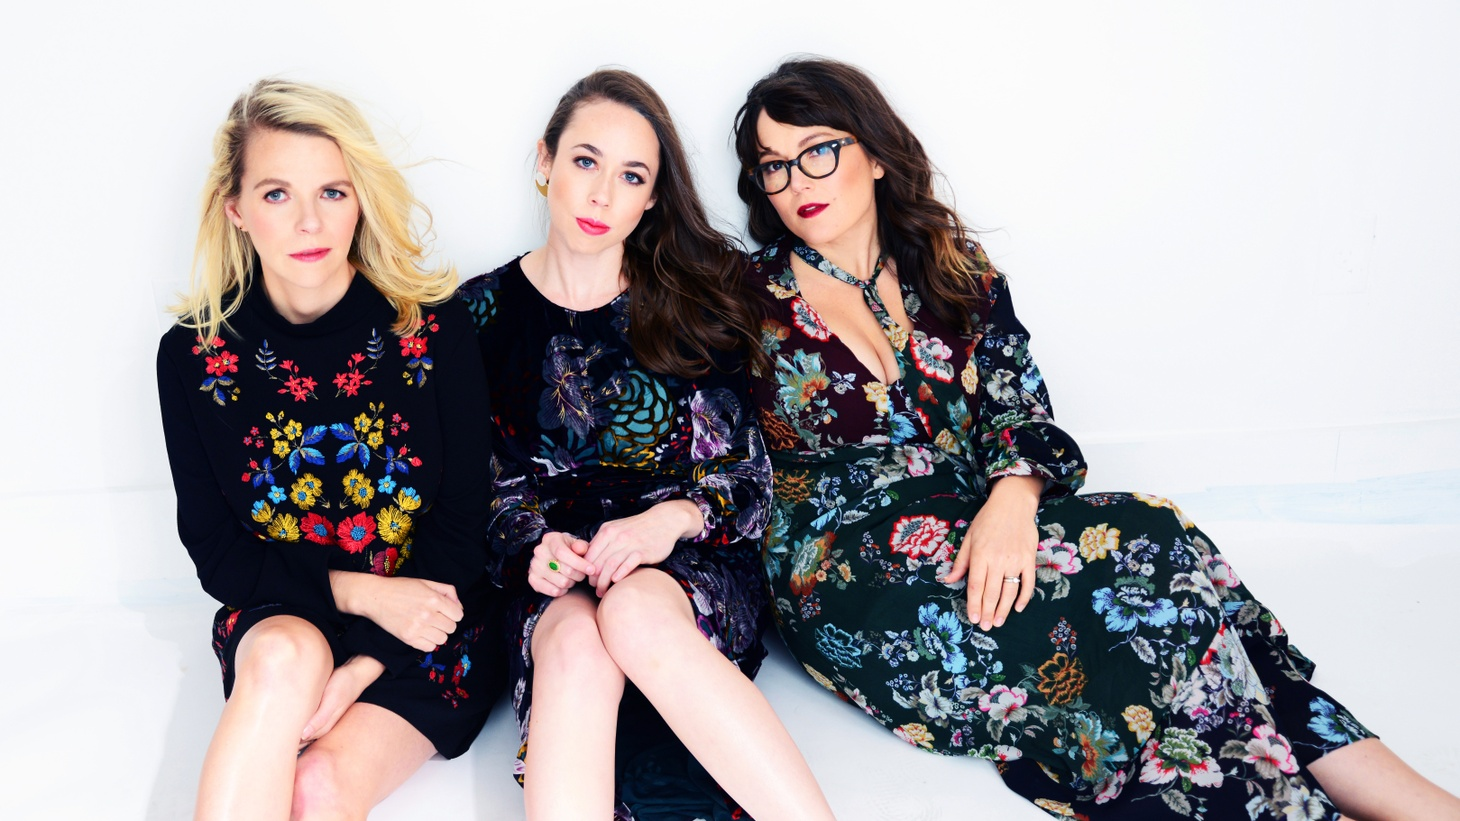 When musicians spend years on the touring circuit, they are bound to cross paths again and again, such was the case for Sara Watkins (Nickel Creek), Aofie O'Donovan (Crooked Still), and Sarah Jarosz.